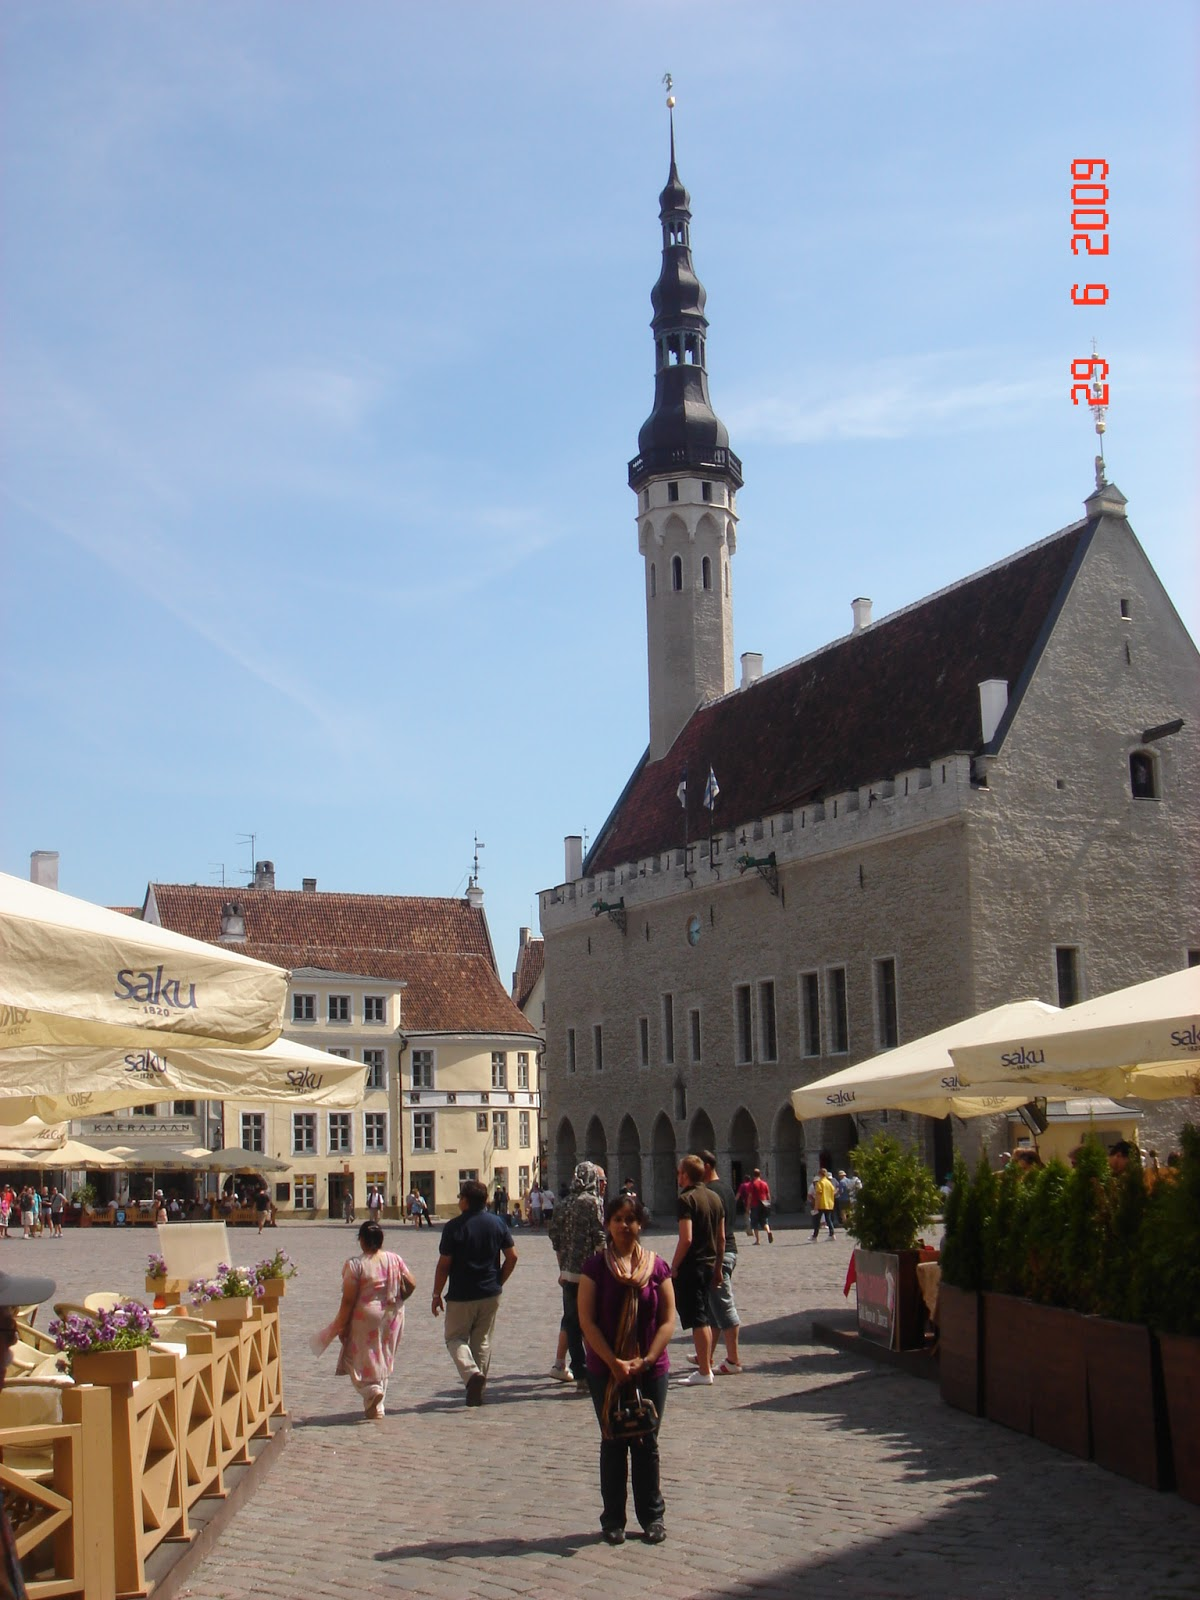 Town Hall Square at Old Town Tallinn